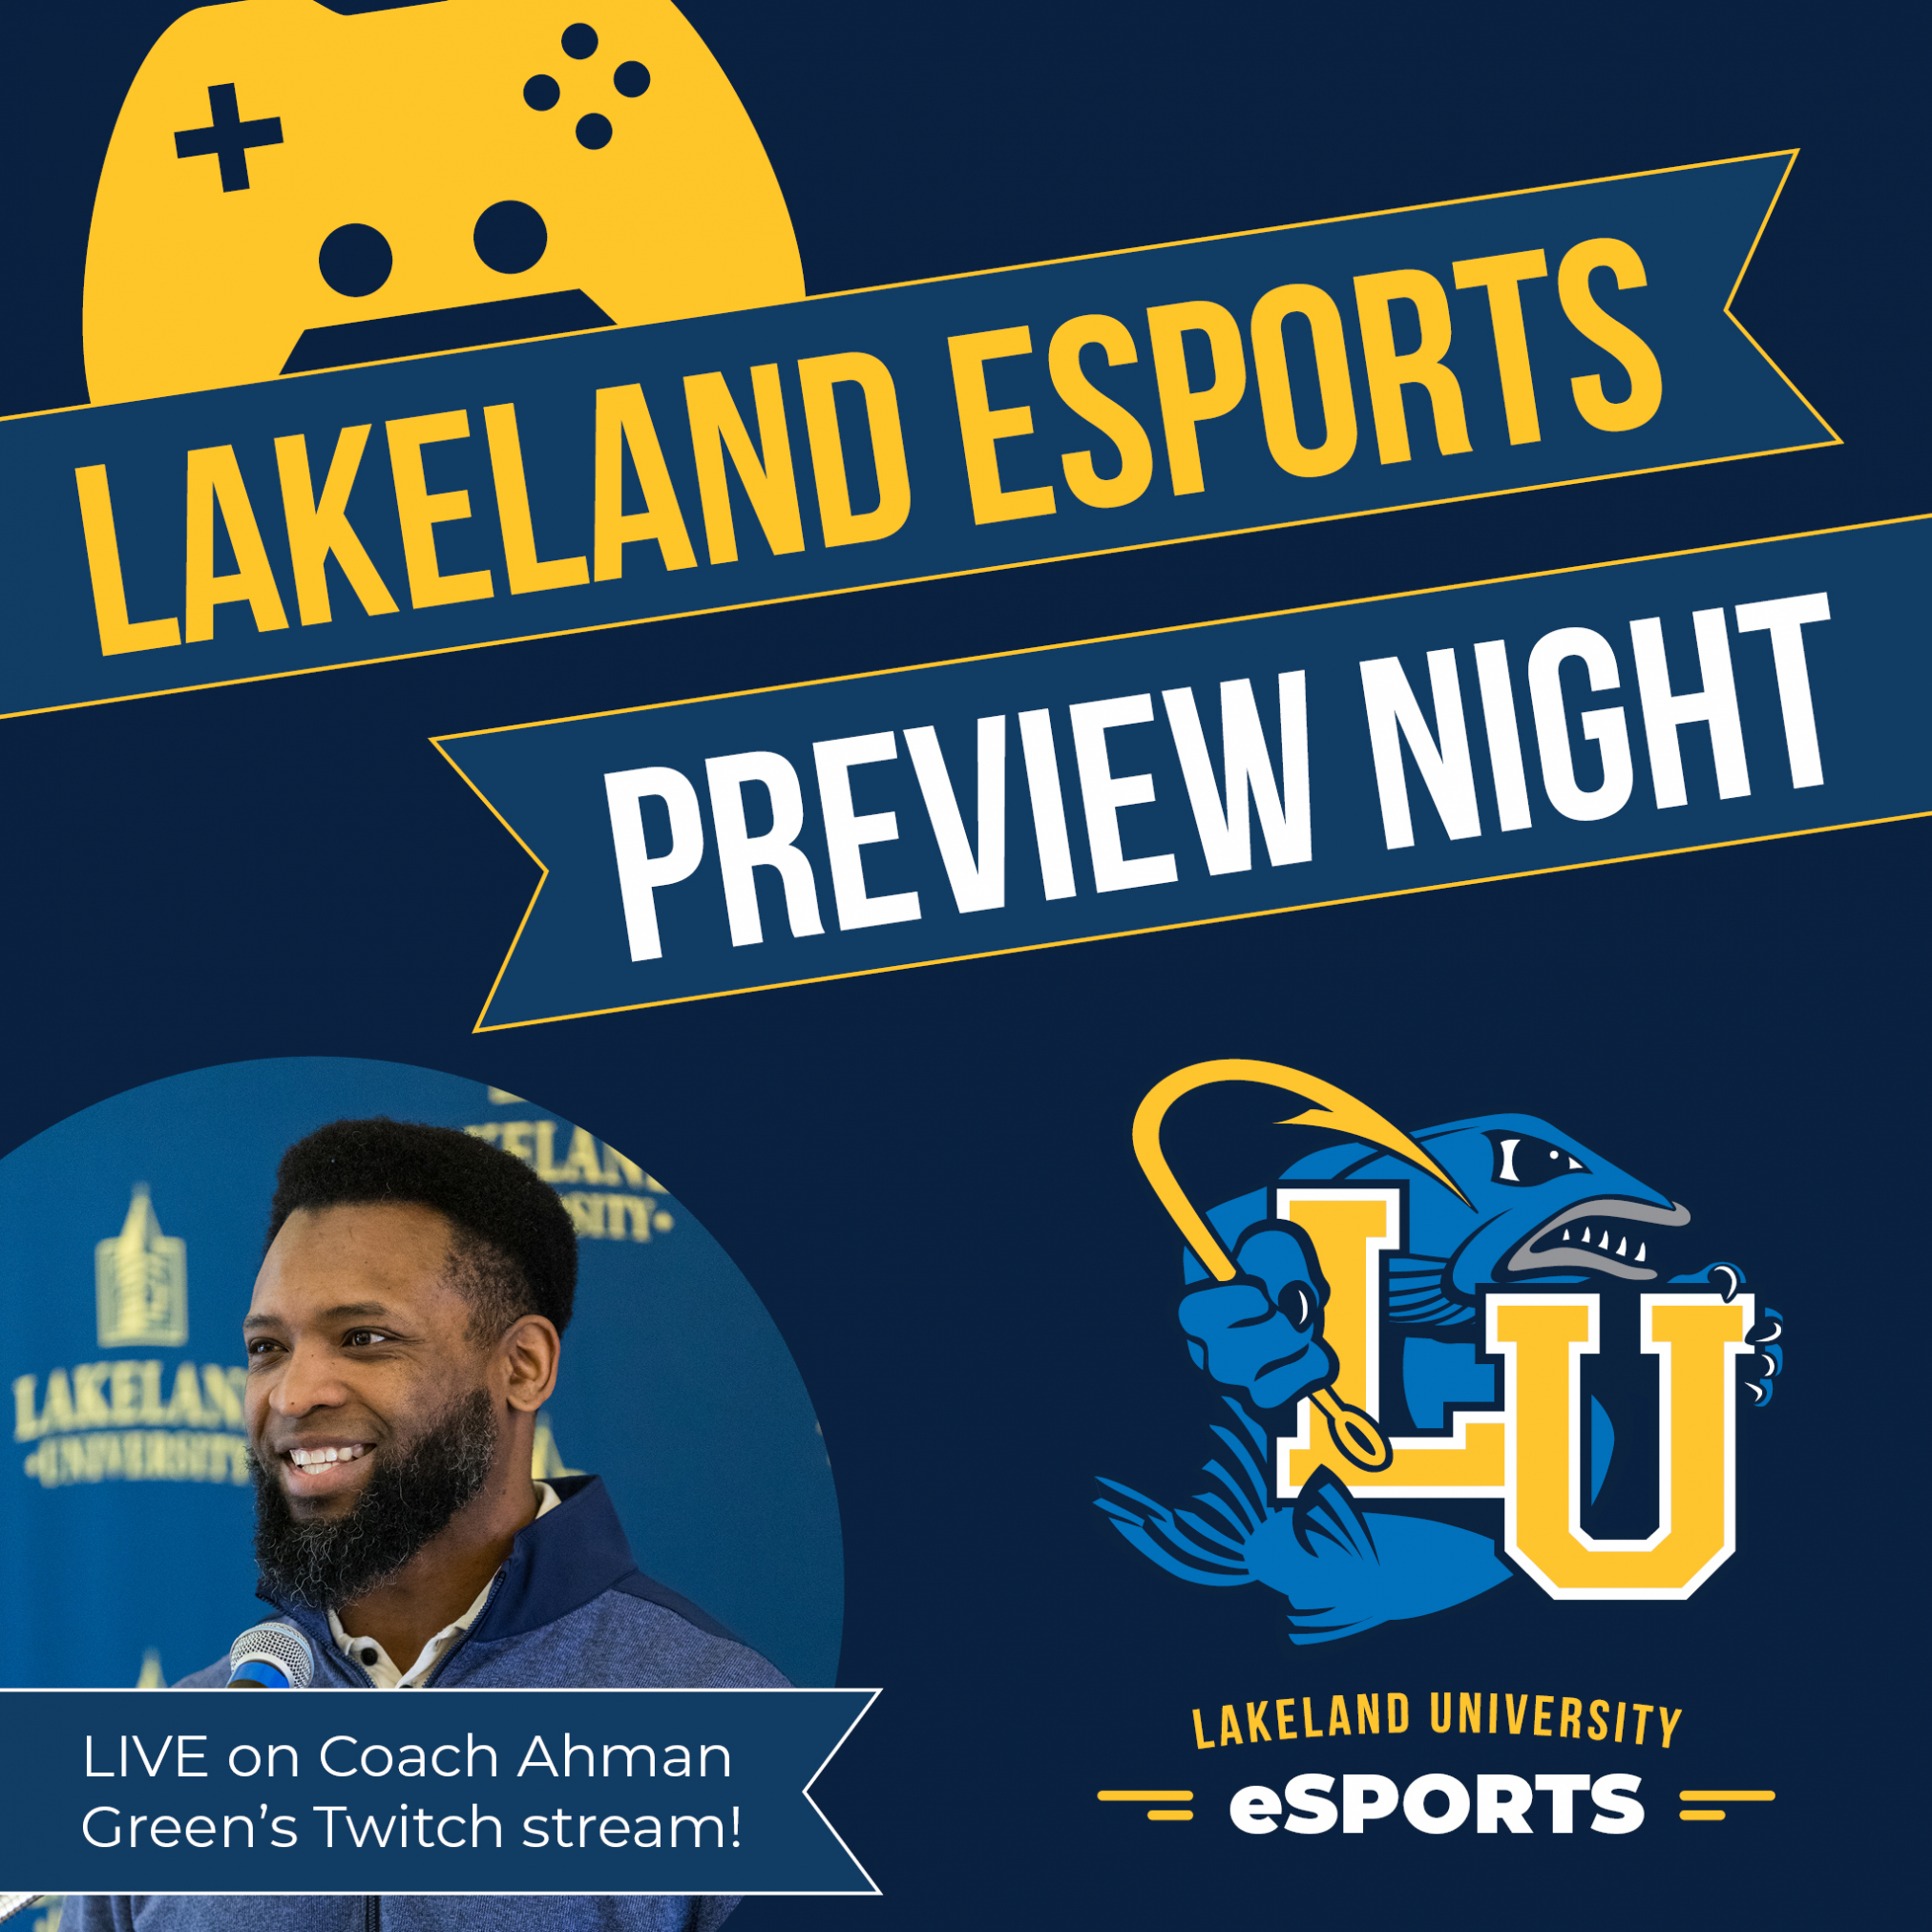 Join us for our second LU Esports Preview Night Feature Image